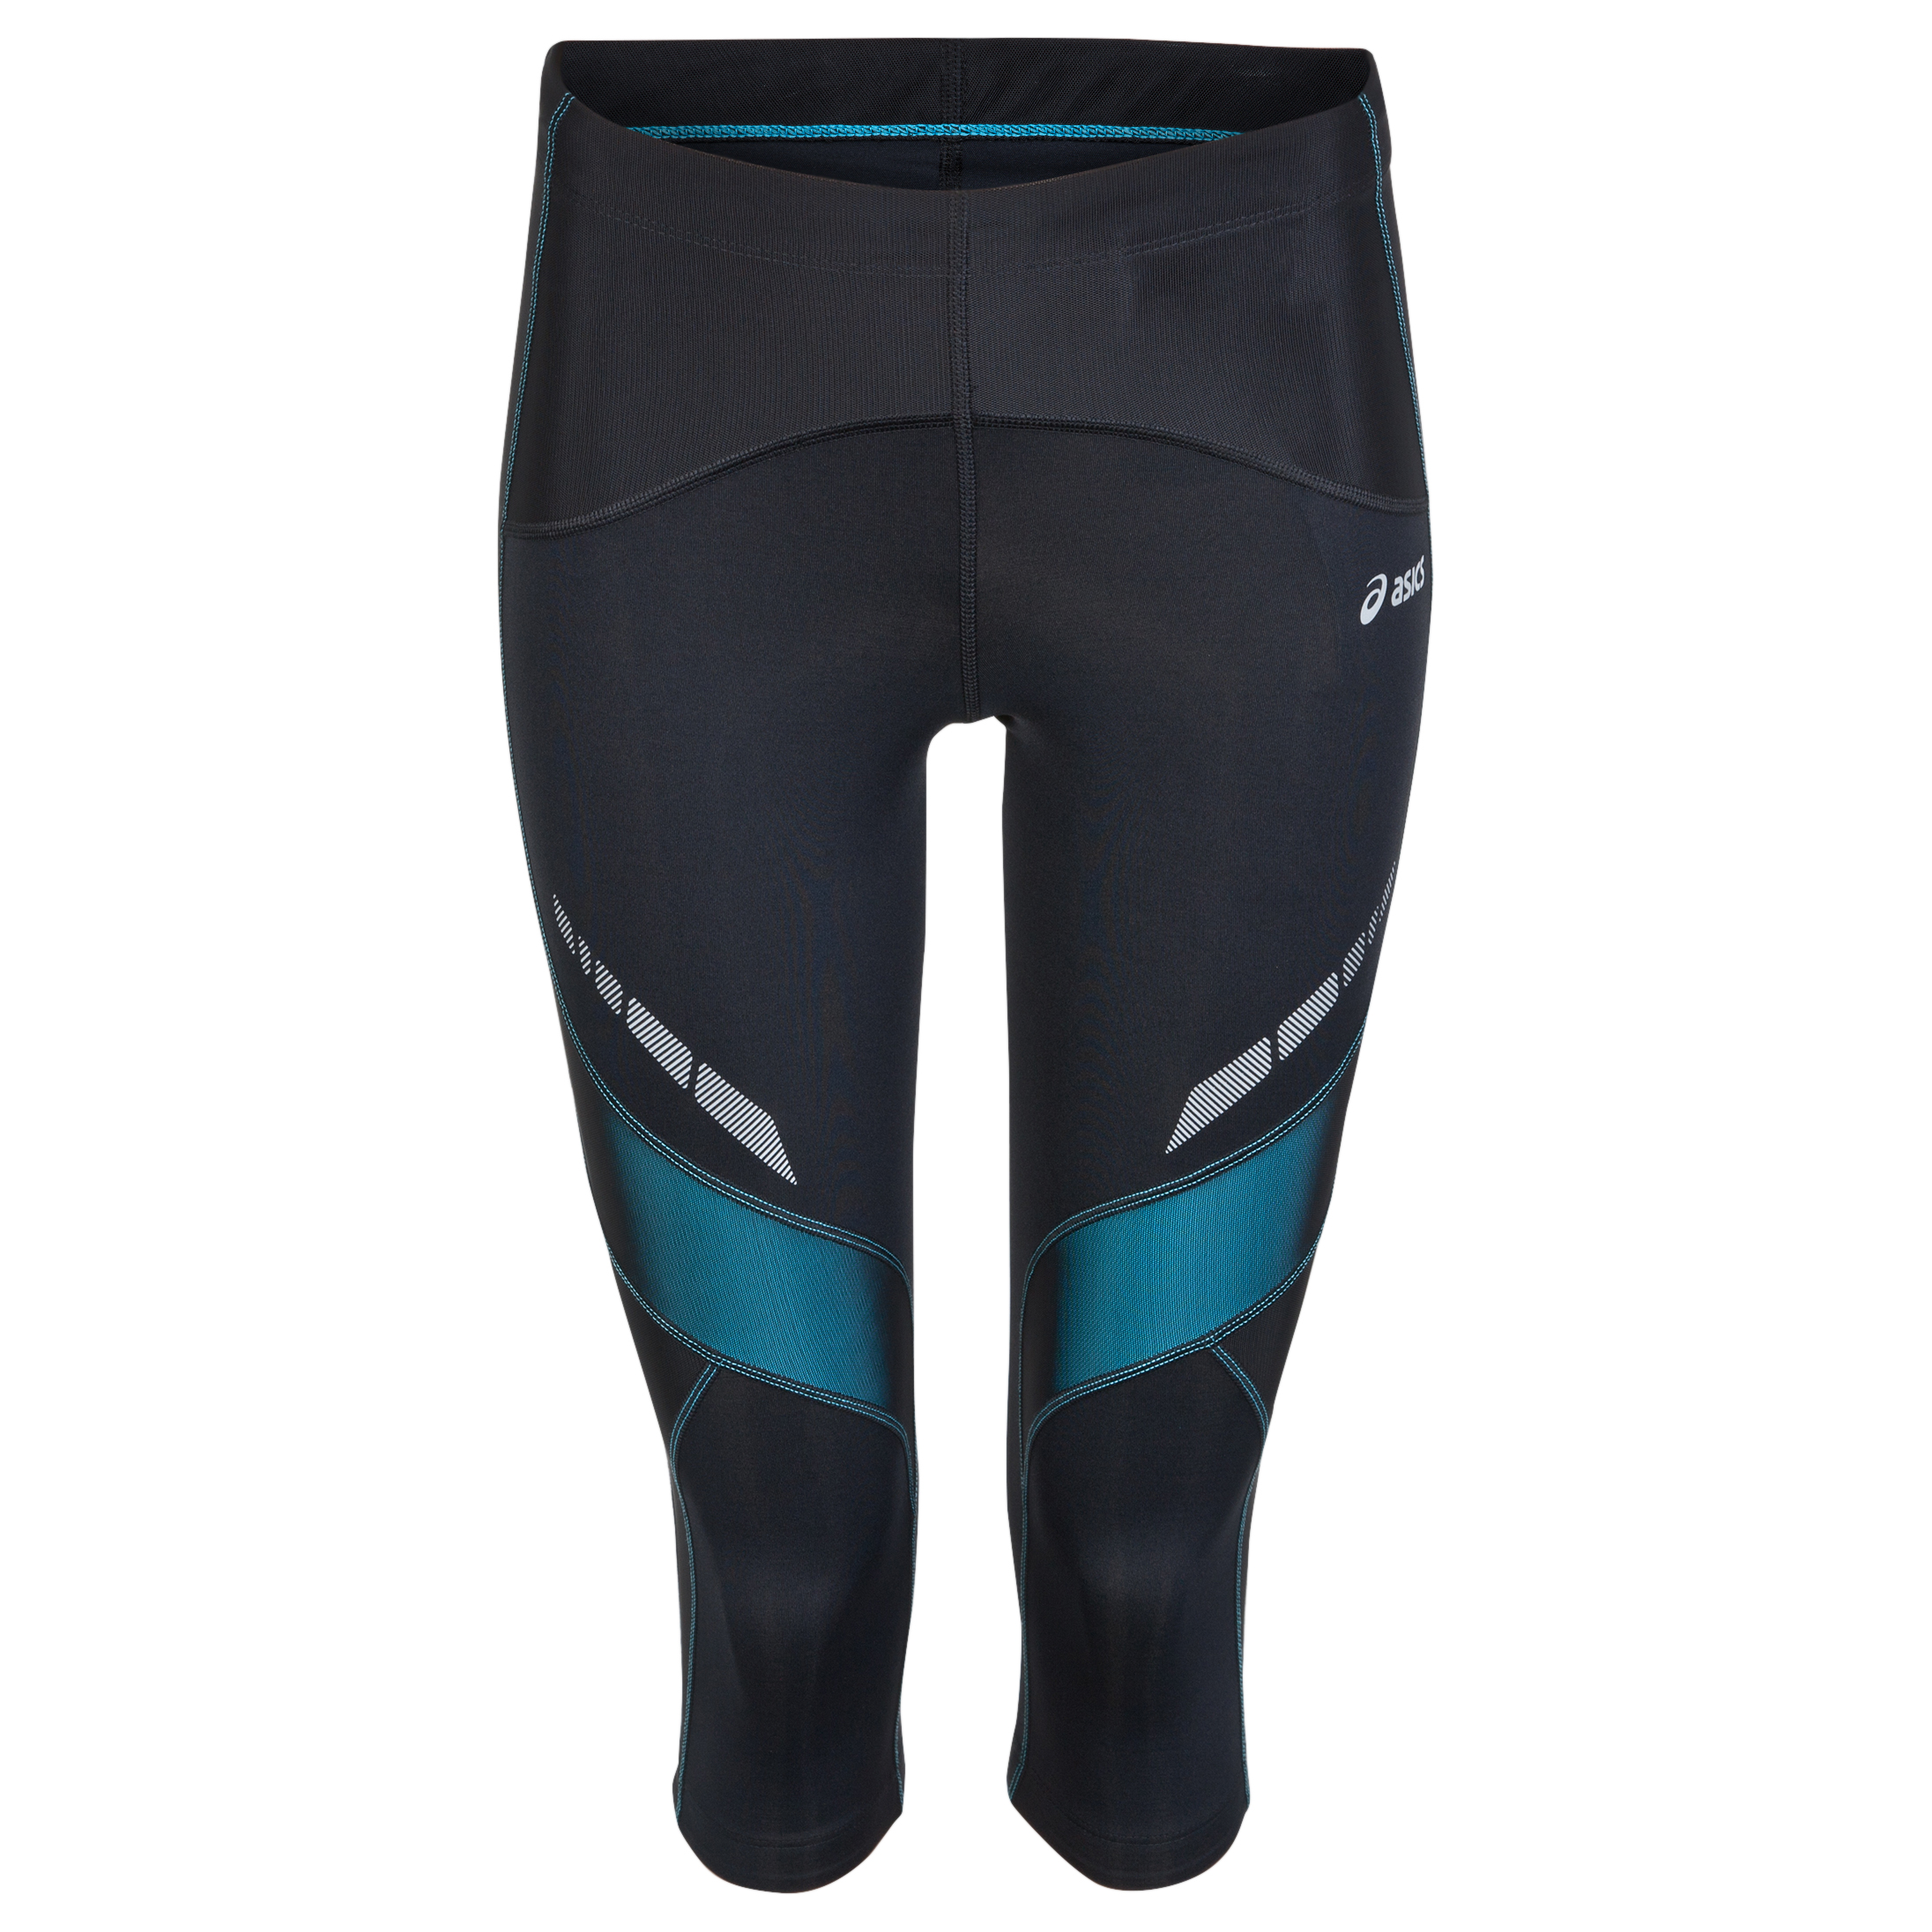 Asics Leg Balance Knee Tights - Womens Black